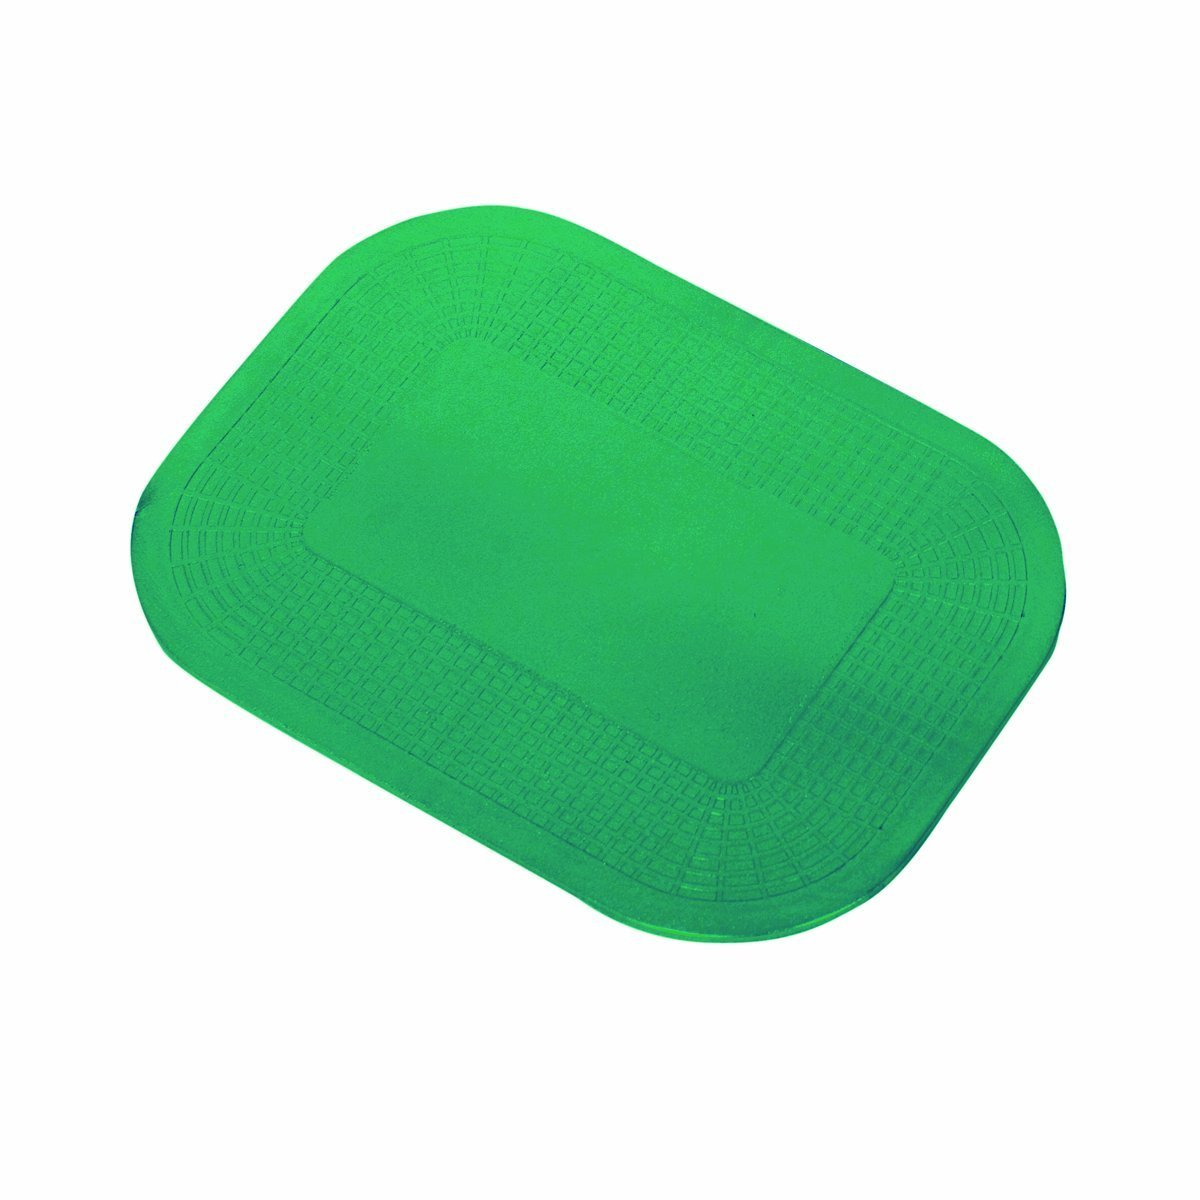 Dycem Pads Activity Pads Rect., Textured Color: Forest Green Size: 10'' x 14'' x 1/8''